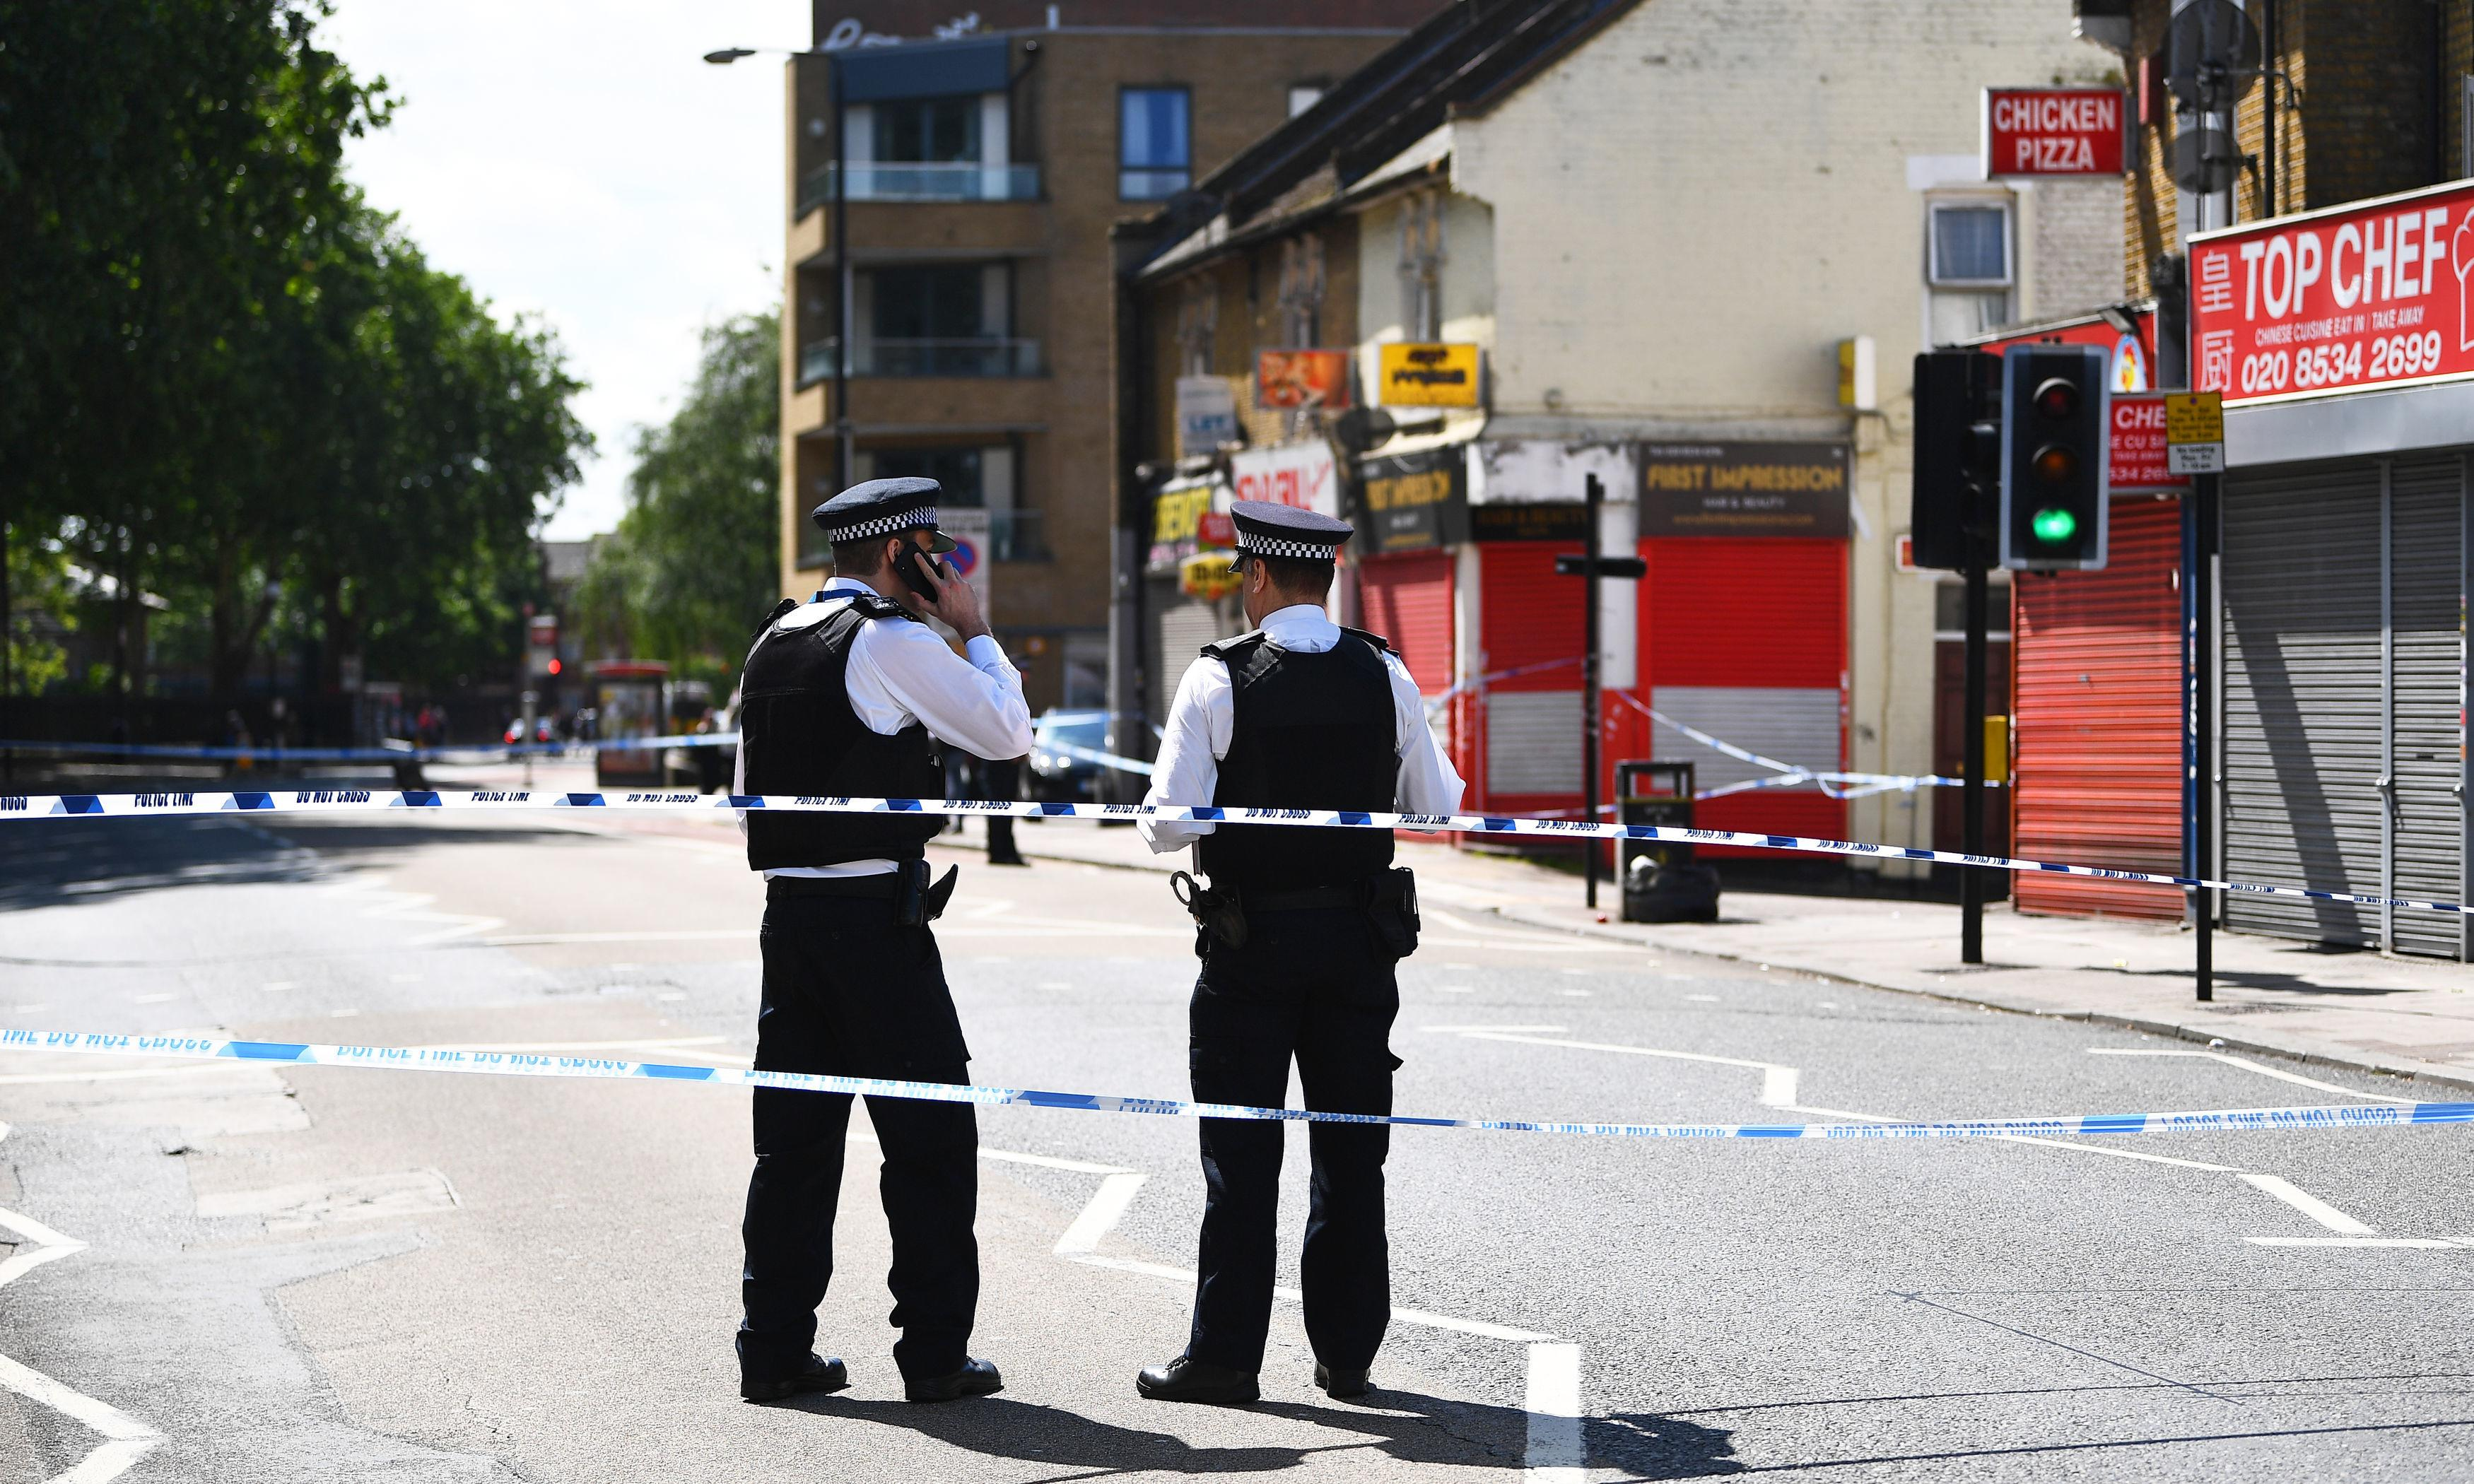 'There's more knife crime, more drugs': east London frustration at latest stabbing